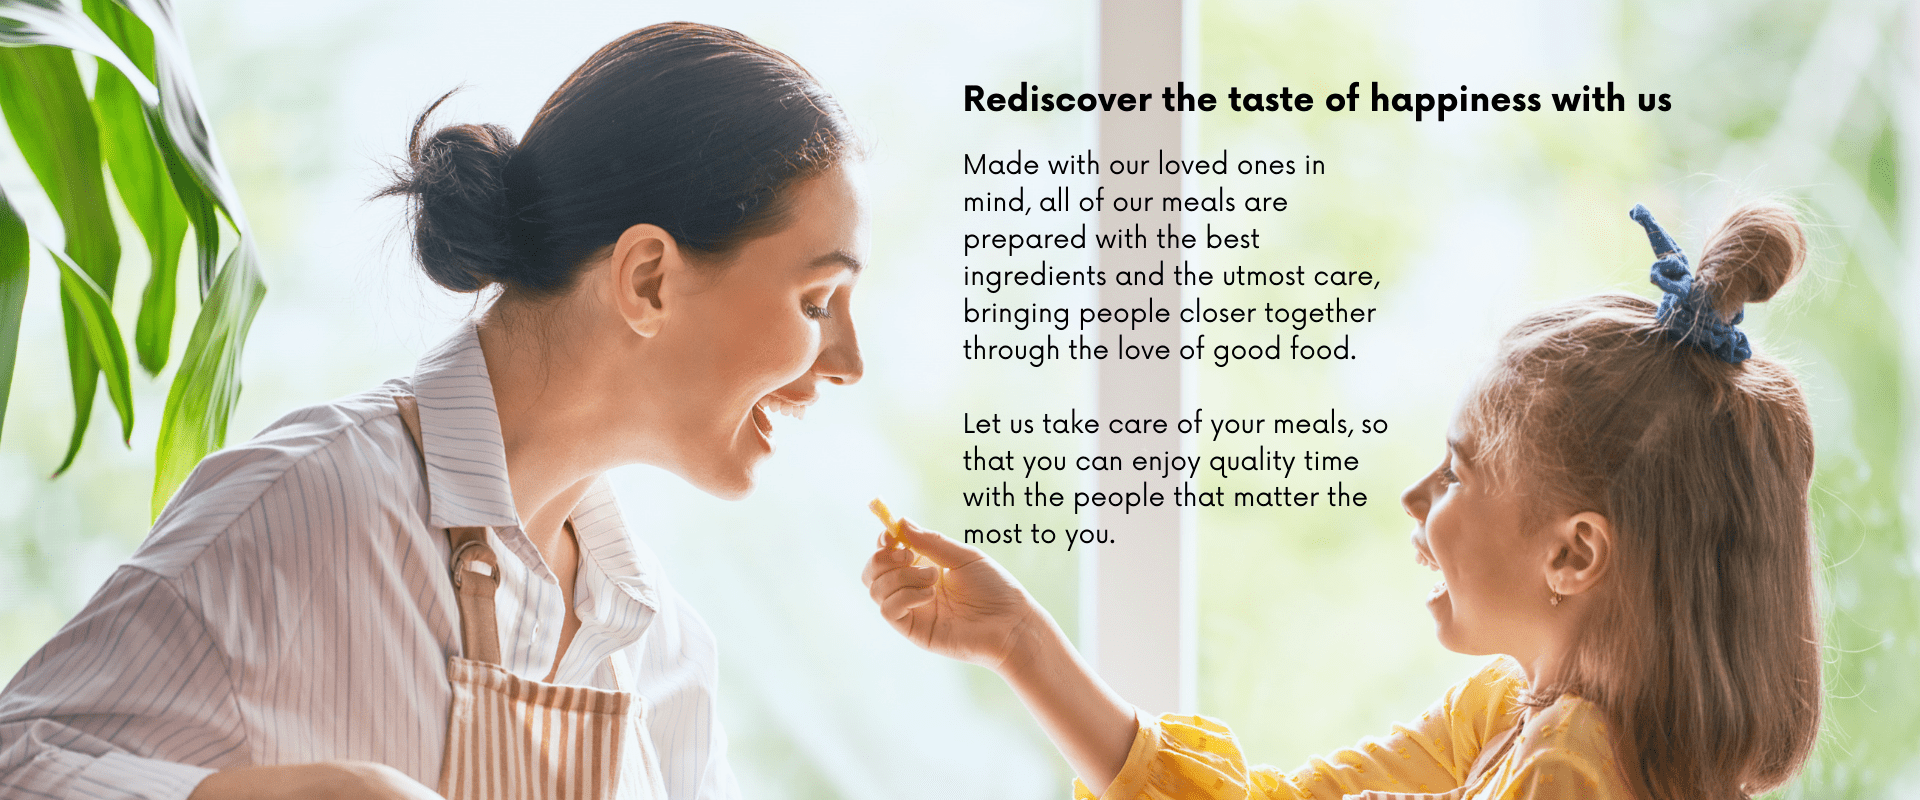 taste happiness with us, meal prepared with best ingredient, bringing people closer together through good food